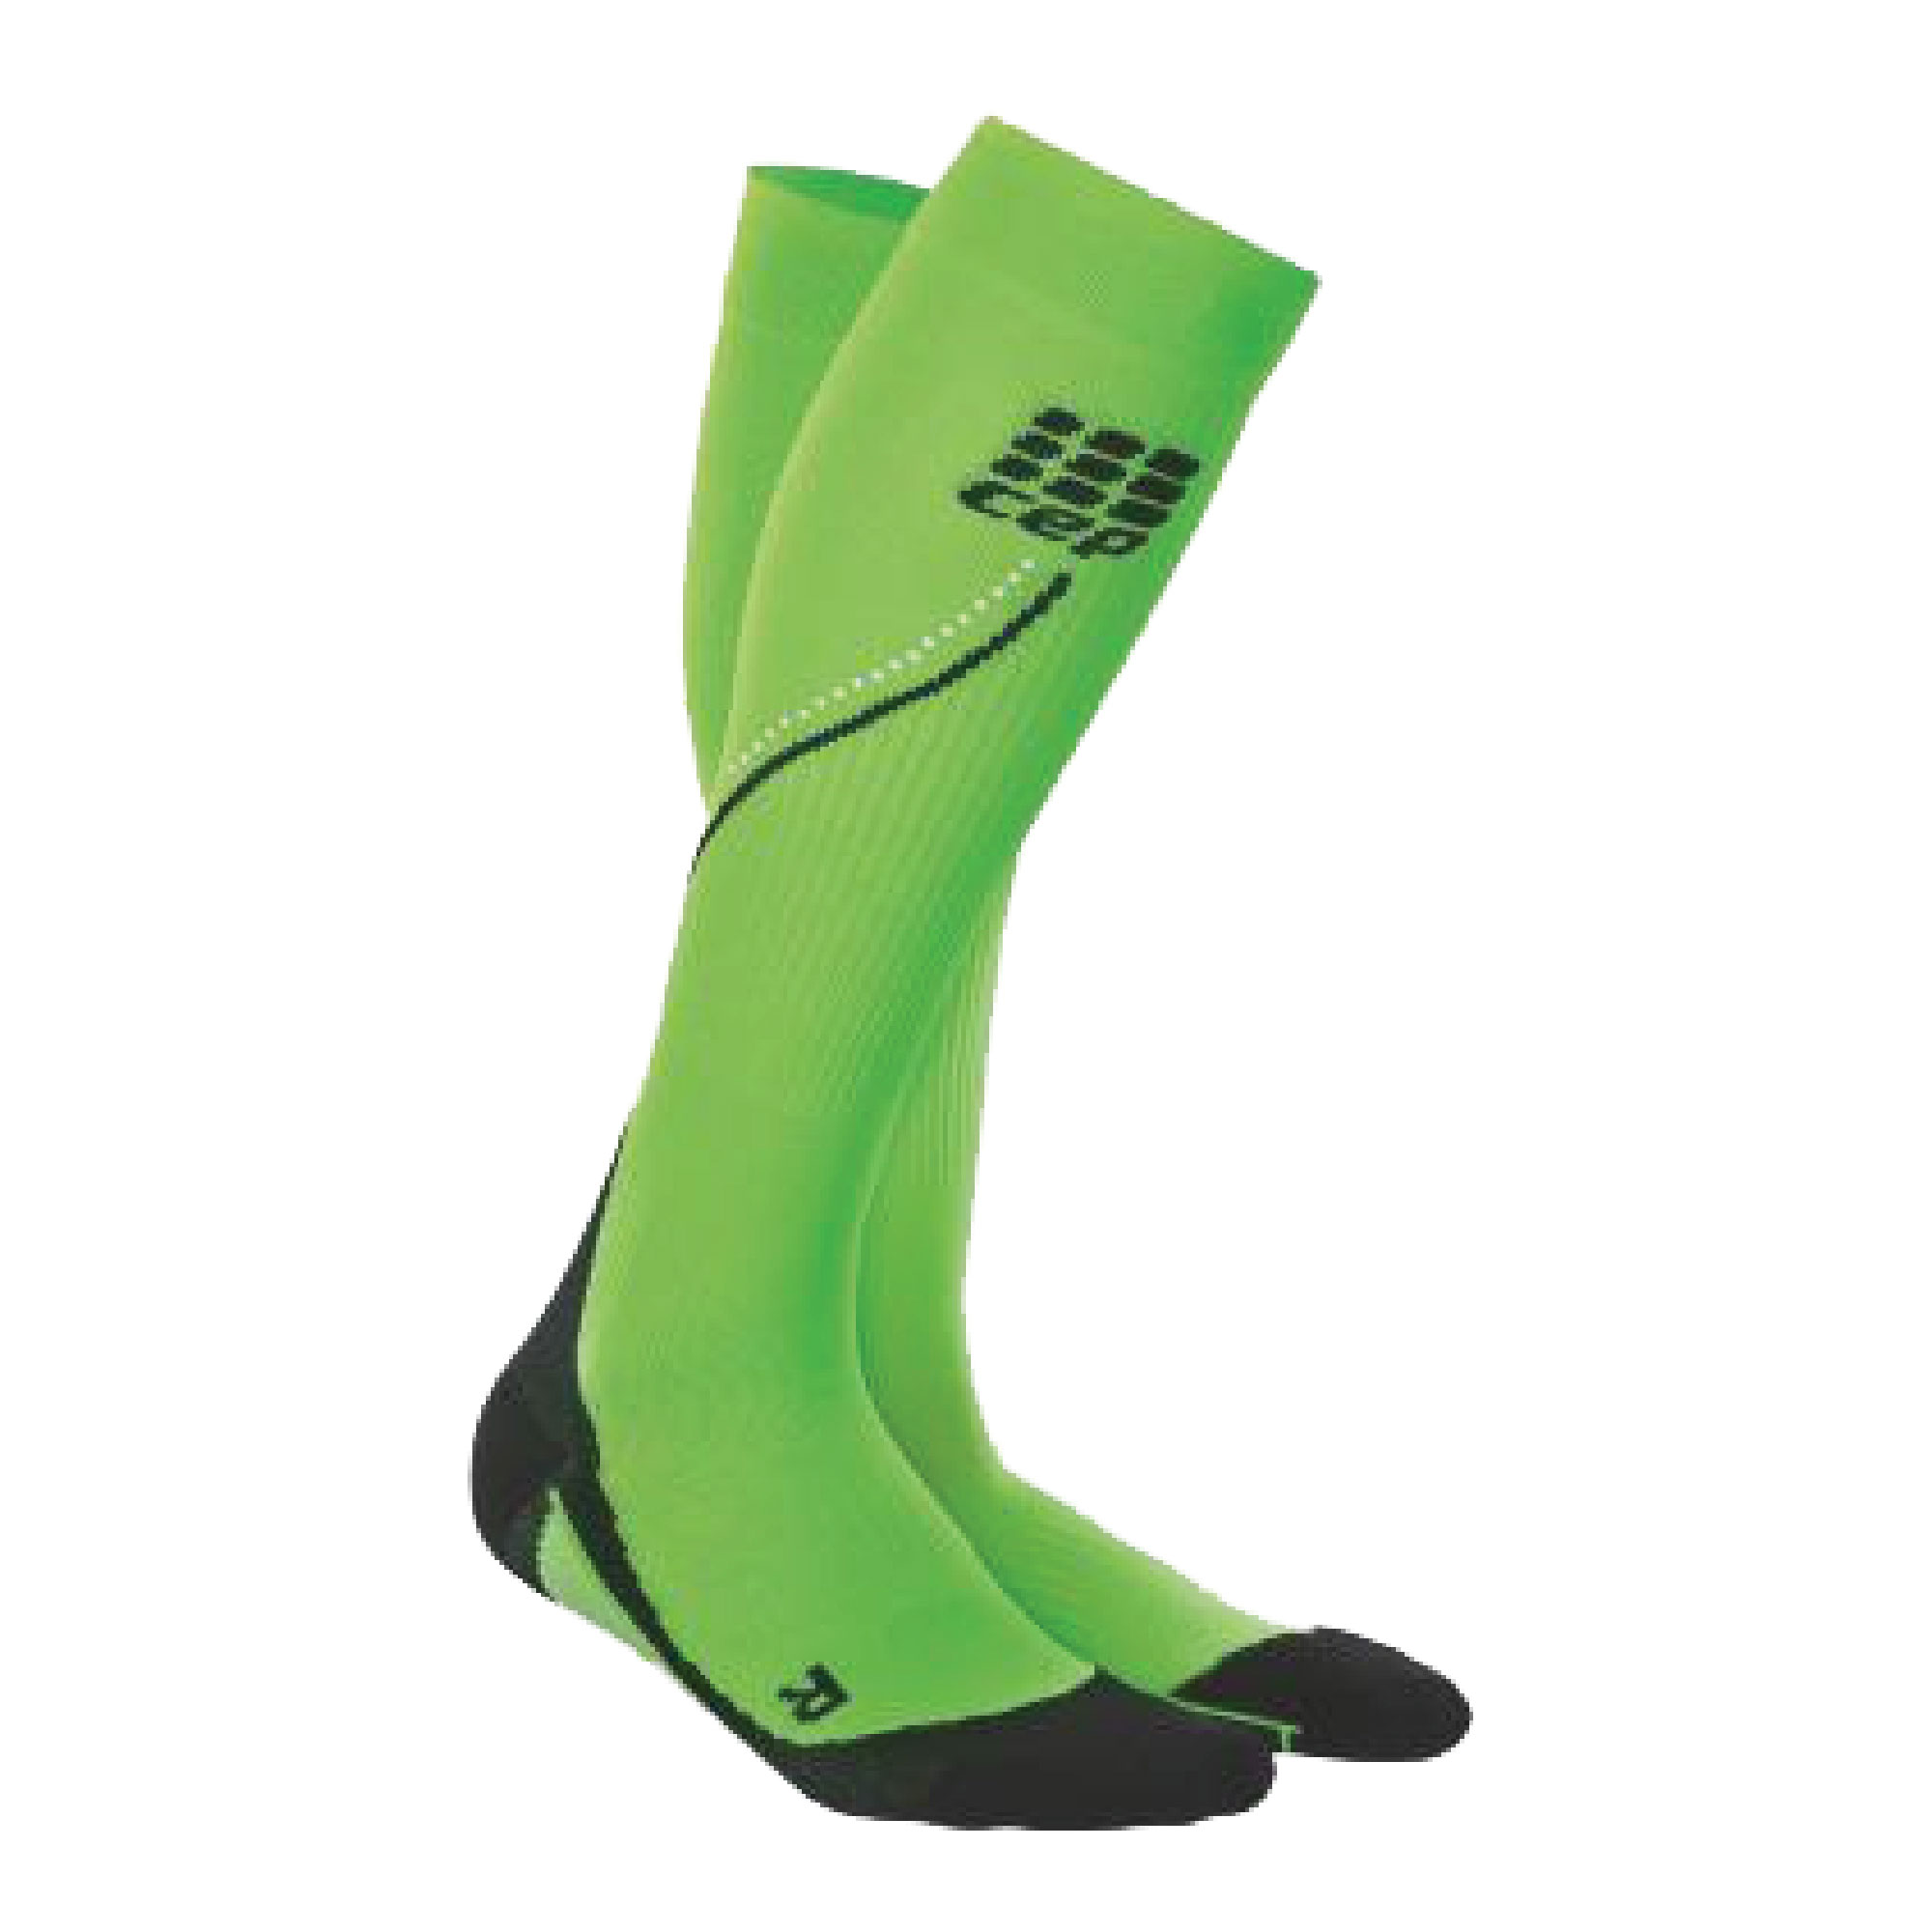 NIGHT RUN SOCKS 2.0 | MEN